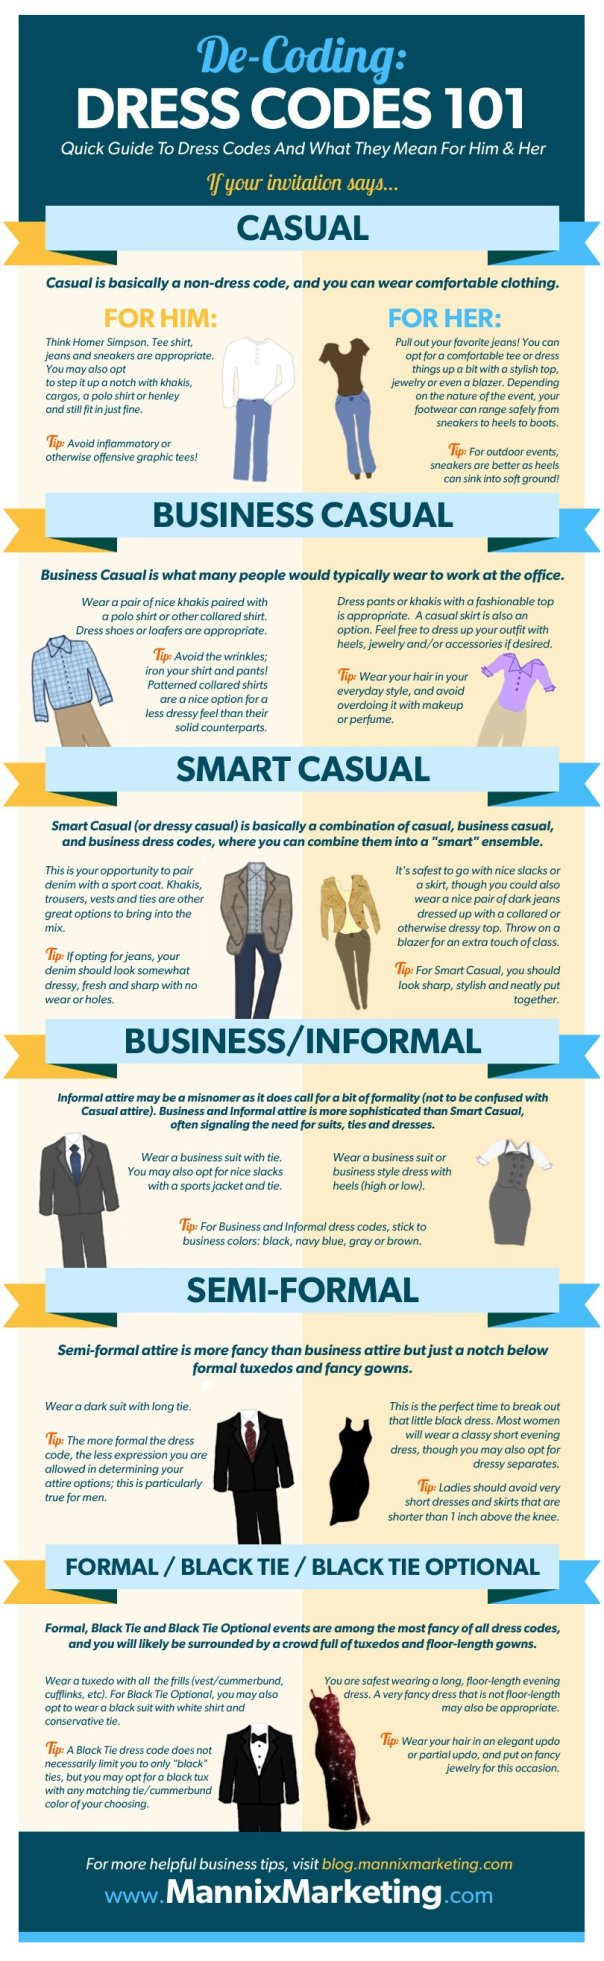 1438877606-business-casual-infographic-dress-codes.jpg